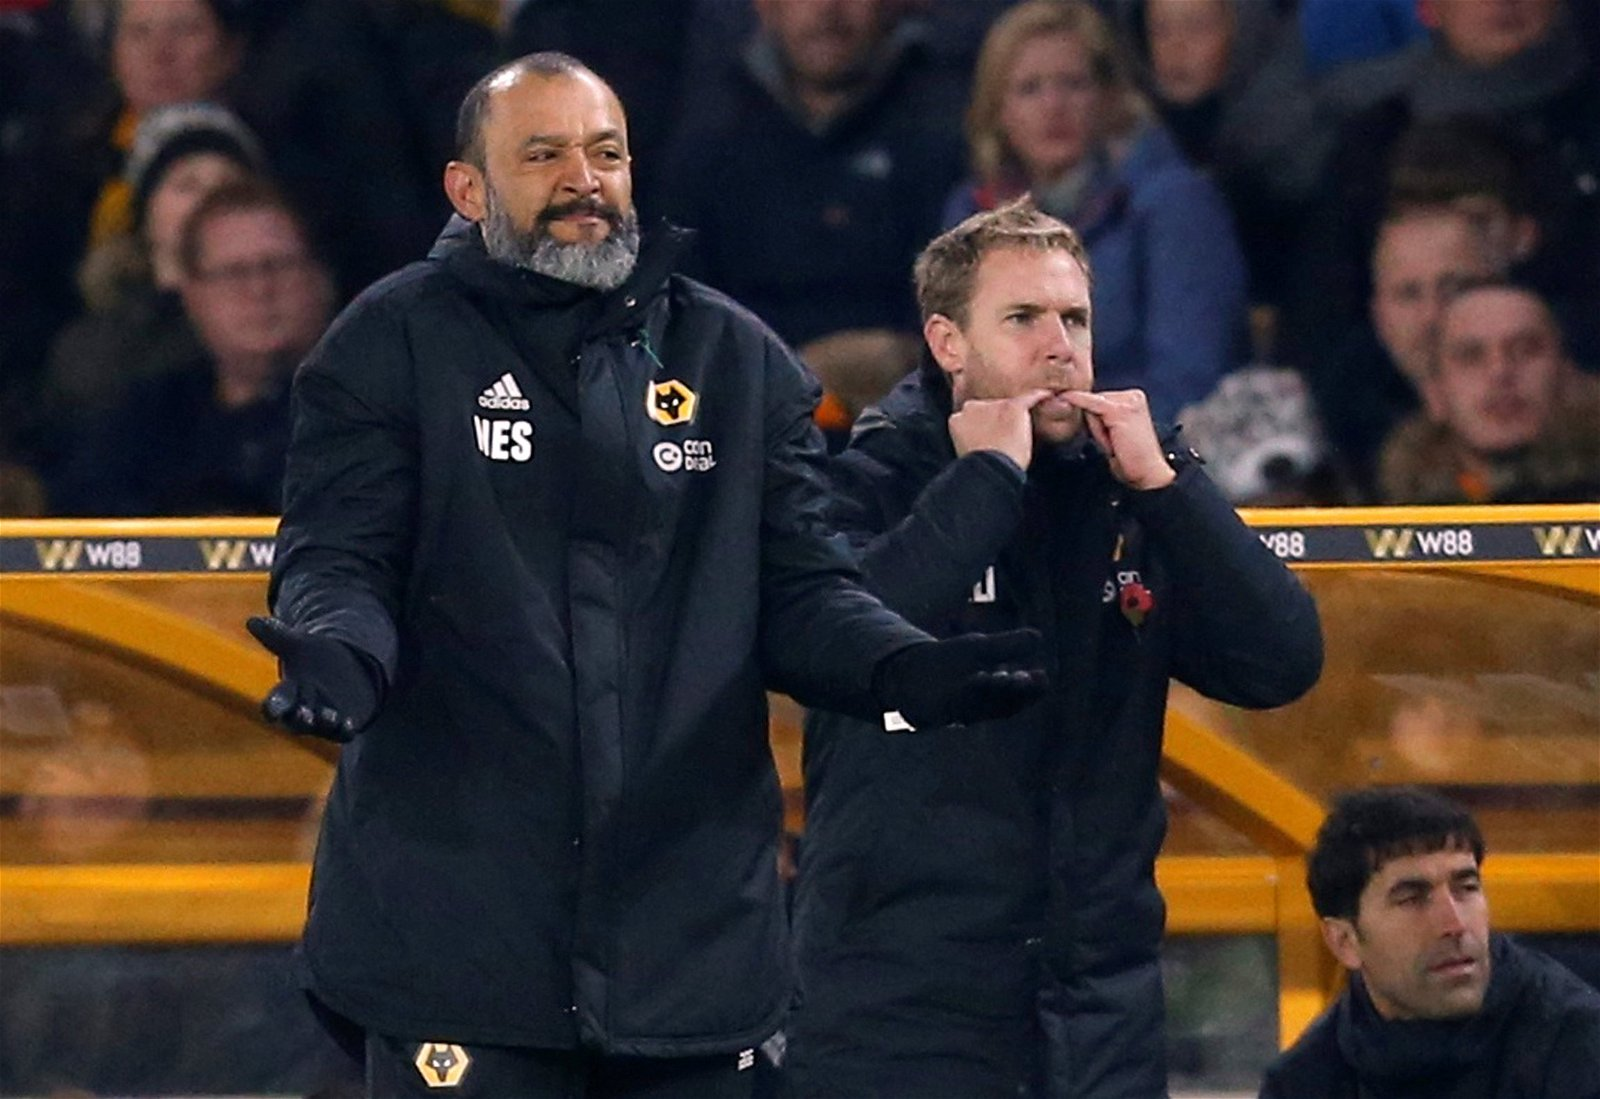 Wolverhampton Wanderers manager Nuno Espirito Santo's comical gesture during the Tottenham defeat